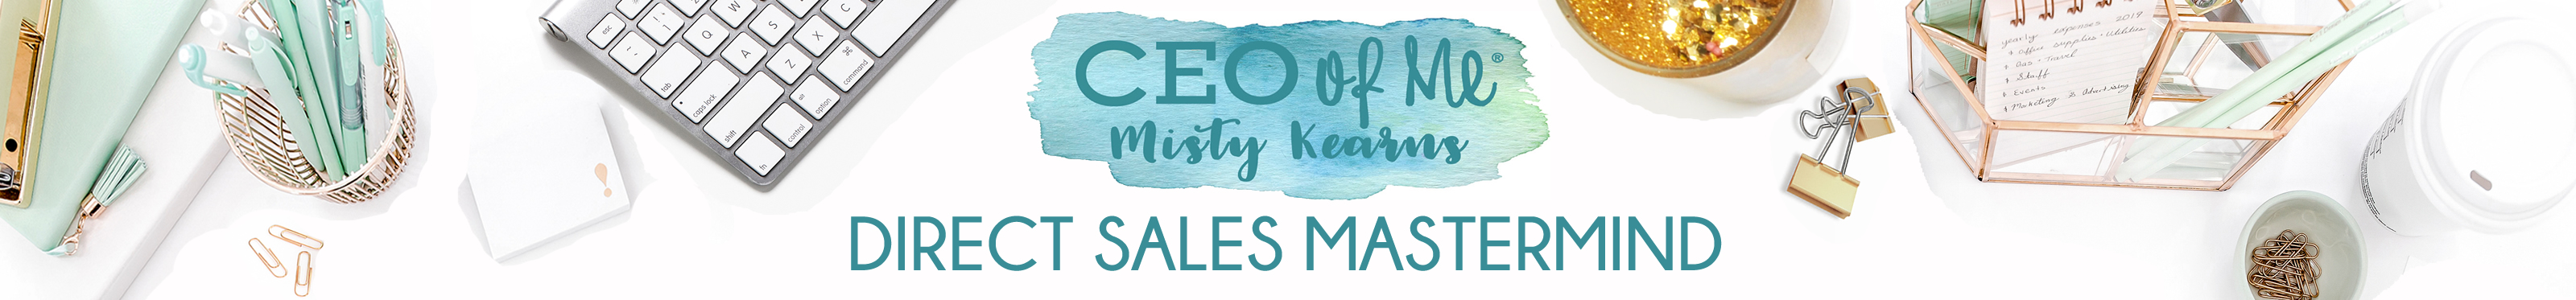 CEO of Me Direct Sales Success Course + Mastermind